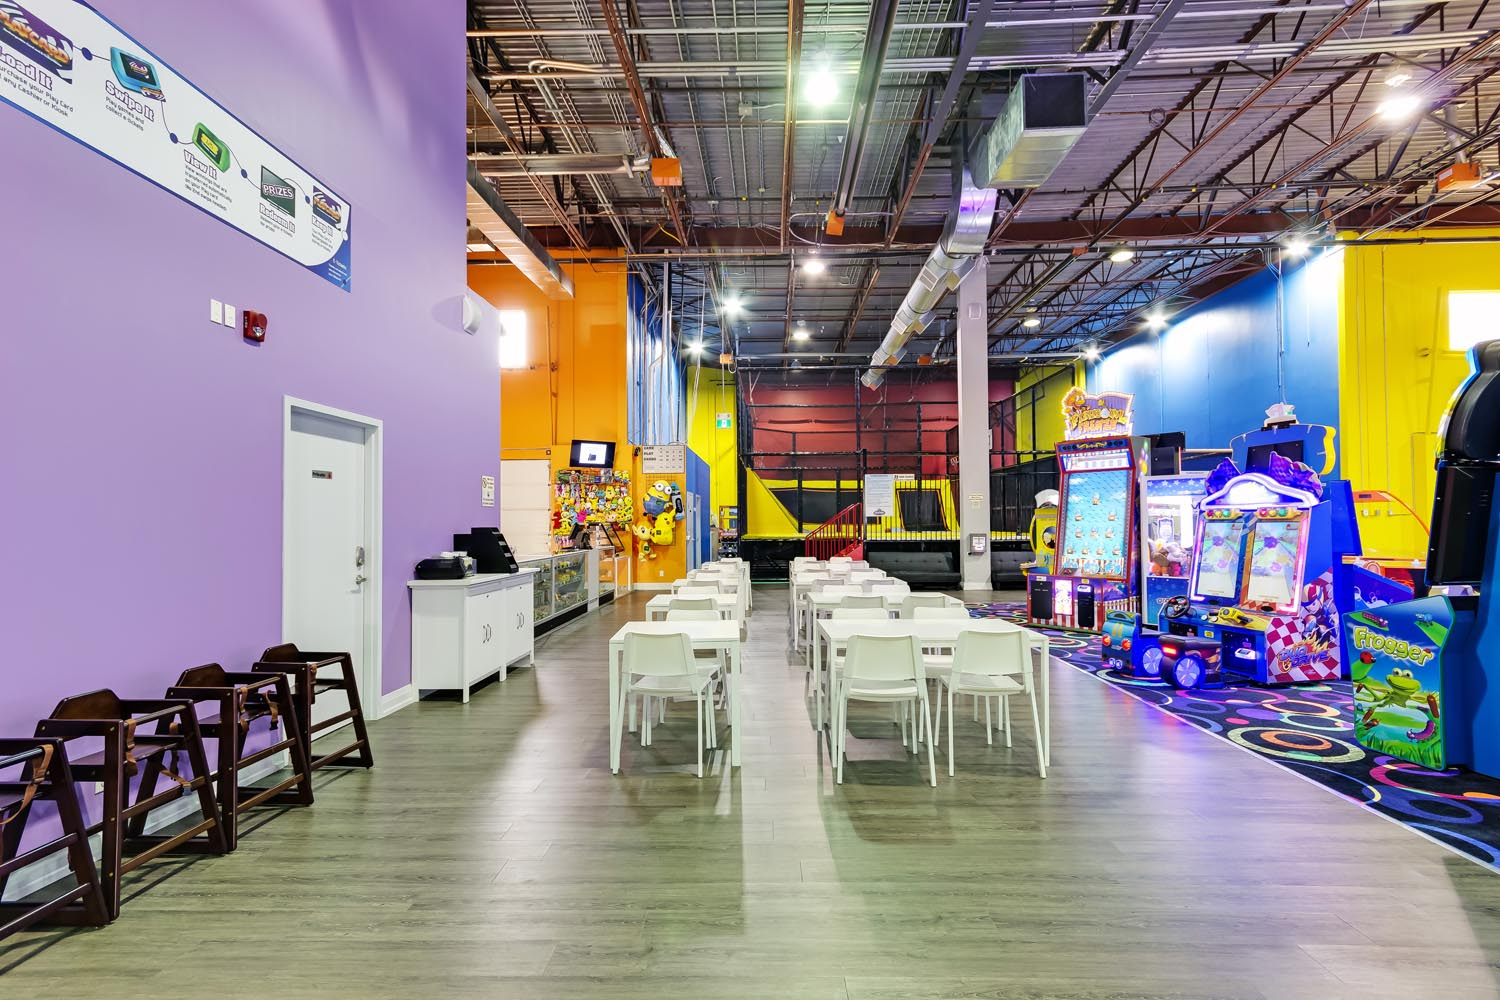 Arcade Games at Playtopia Indoor Playground